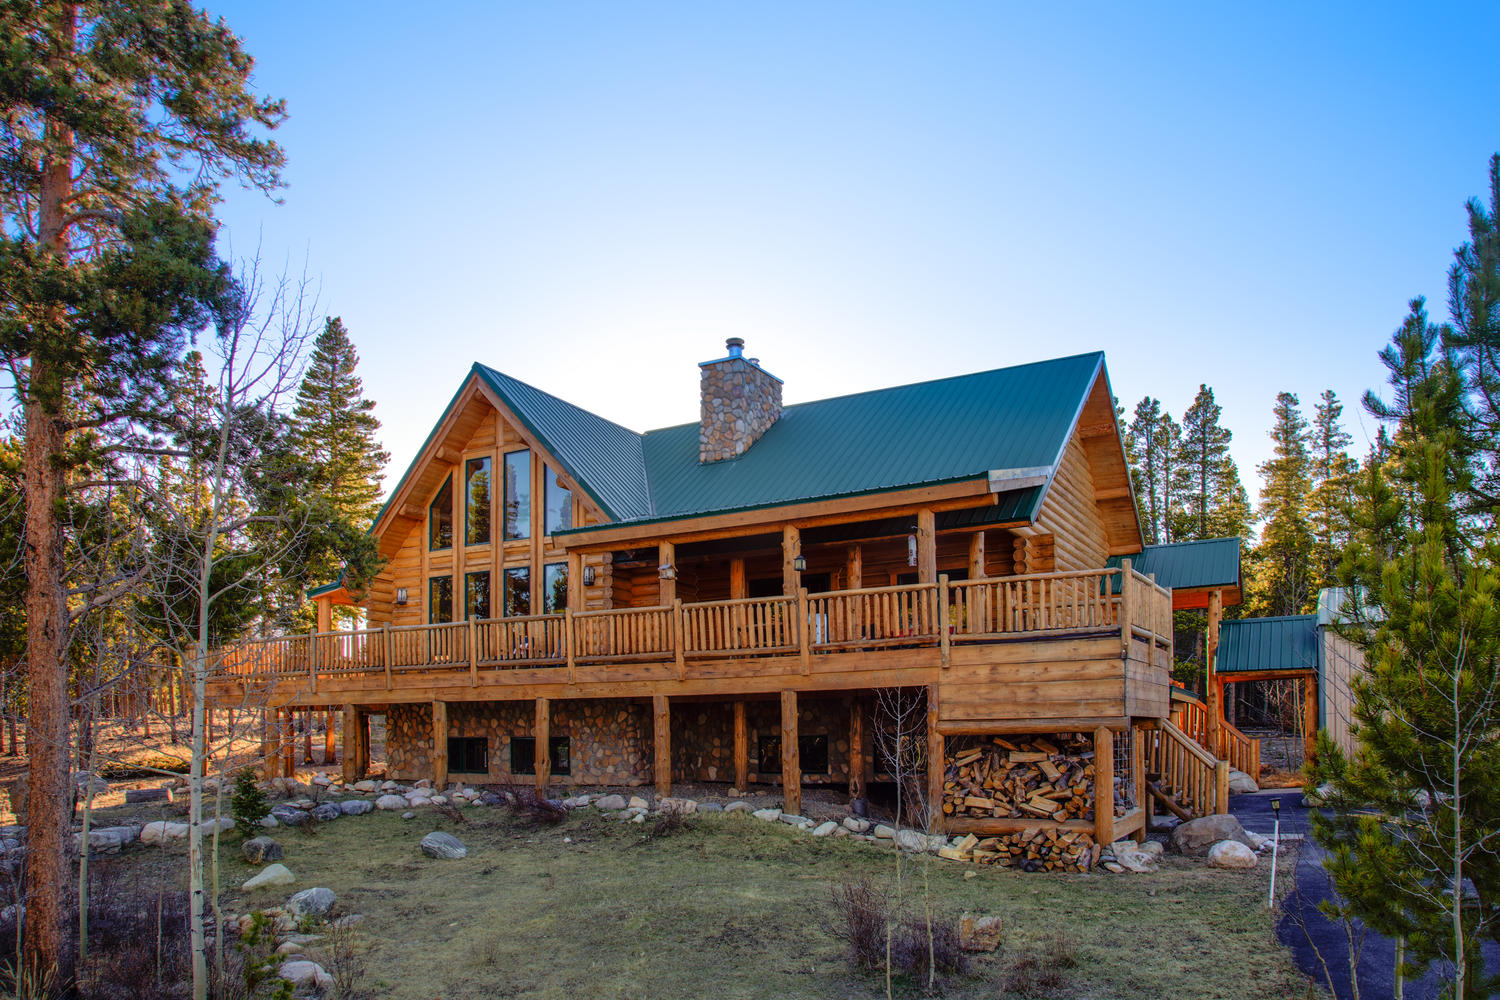 Single Family Home for Sale at El Rancho Estates 511 Cannon Court Fairplay, Colorado, 80440 United States